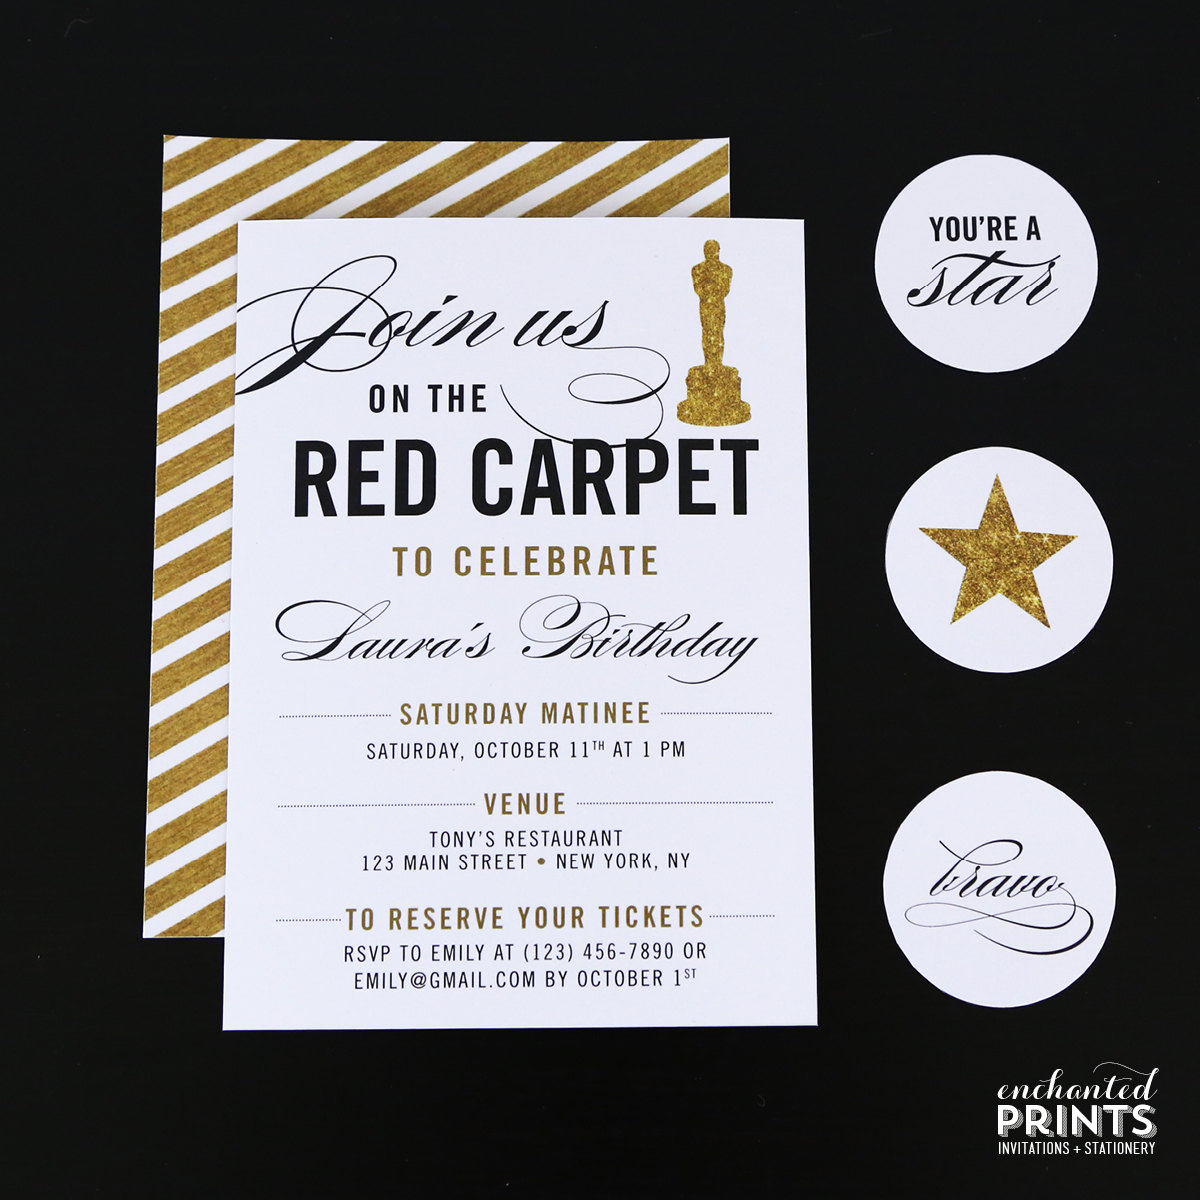 Red Carpet Invitation Template Best Of Red Carpet Birthday Party Invitation Awards by Enchantedprints